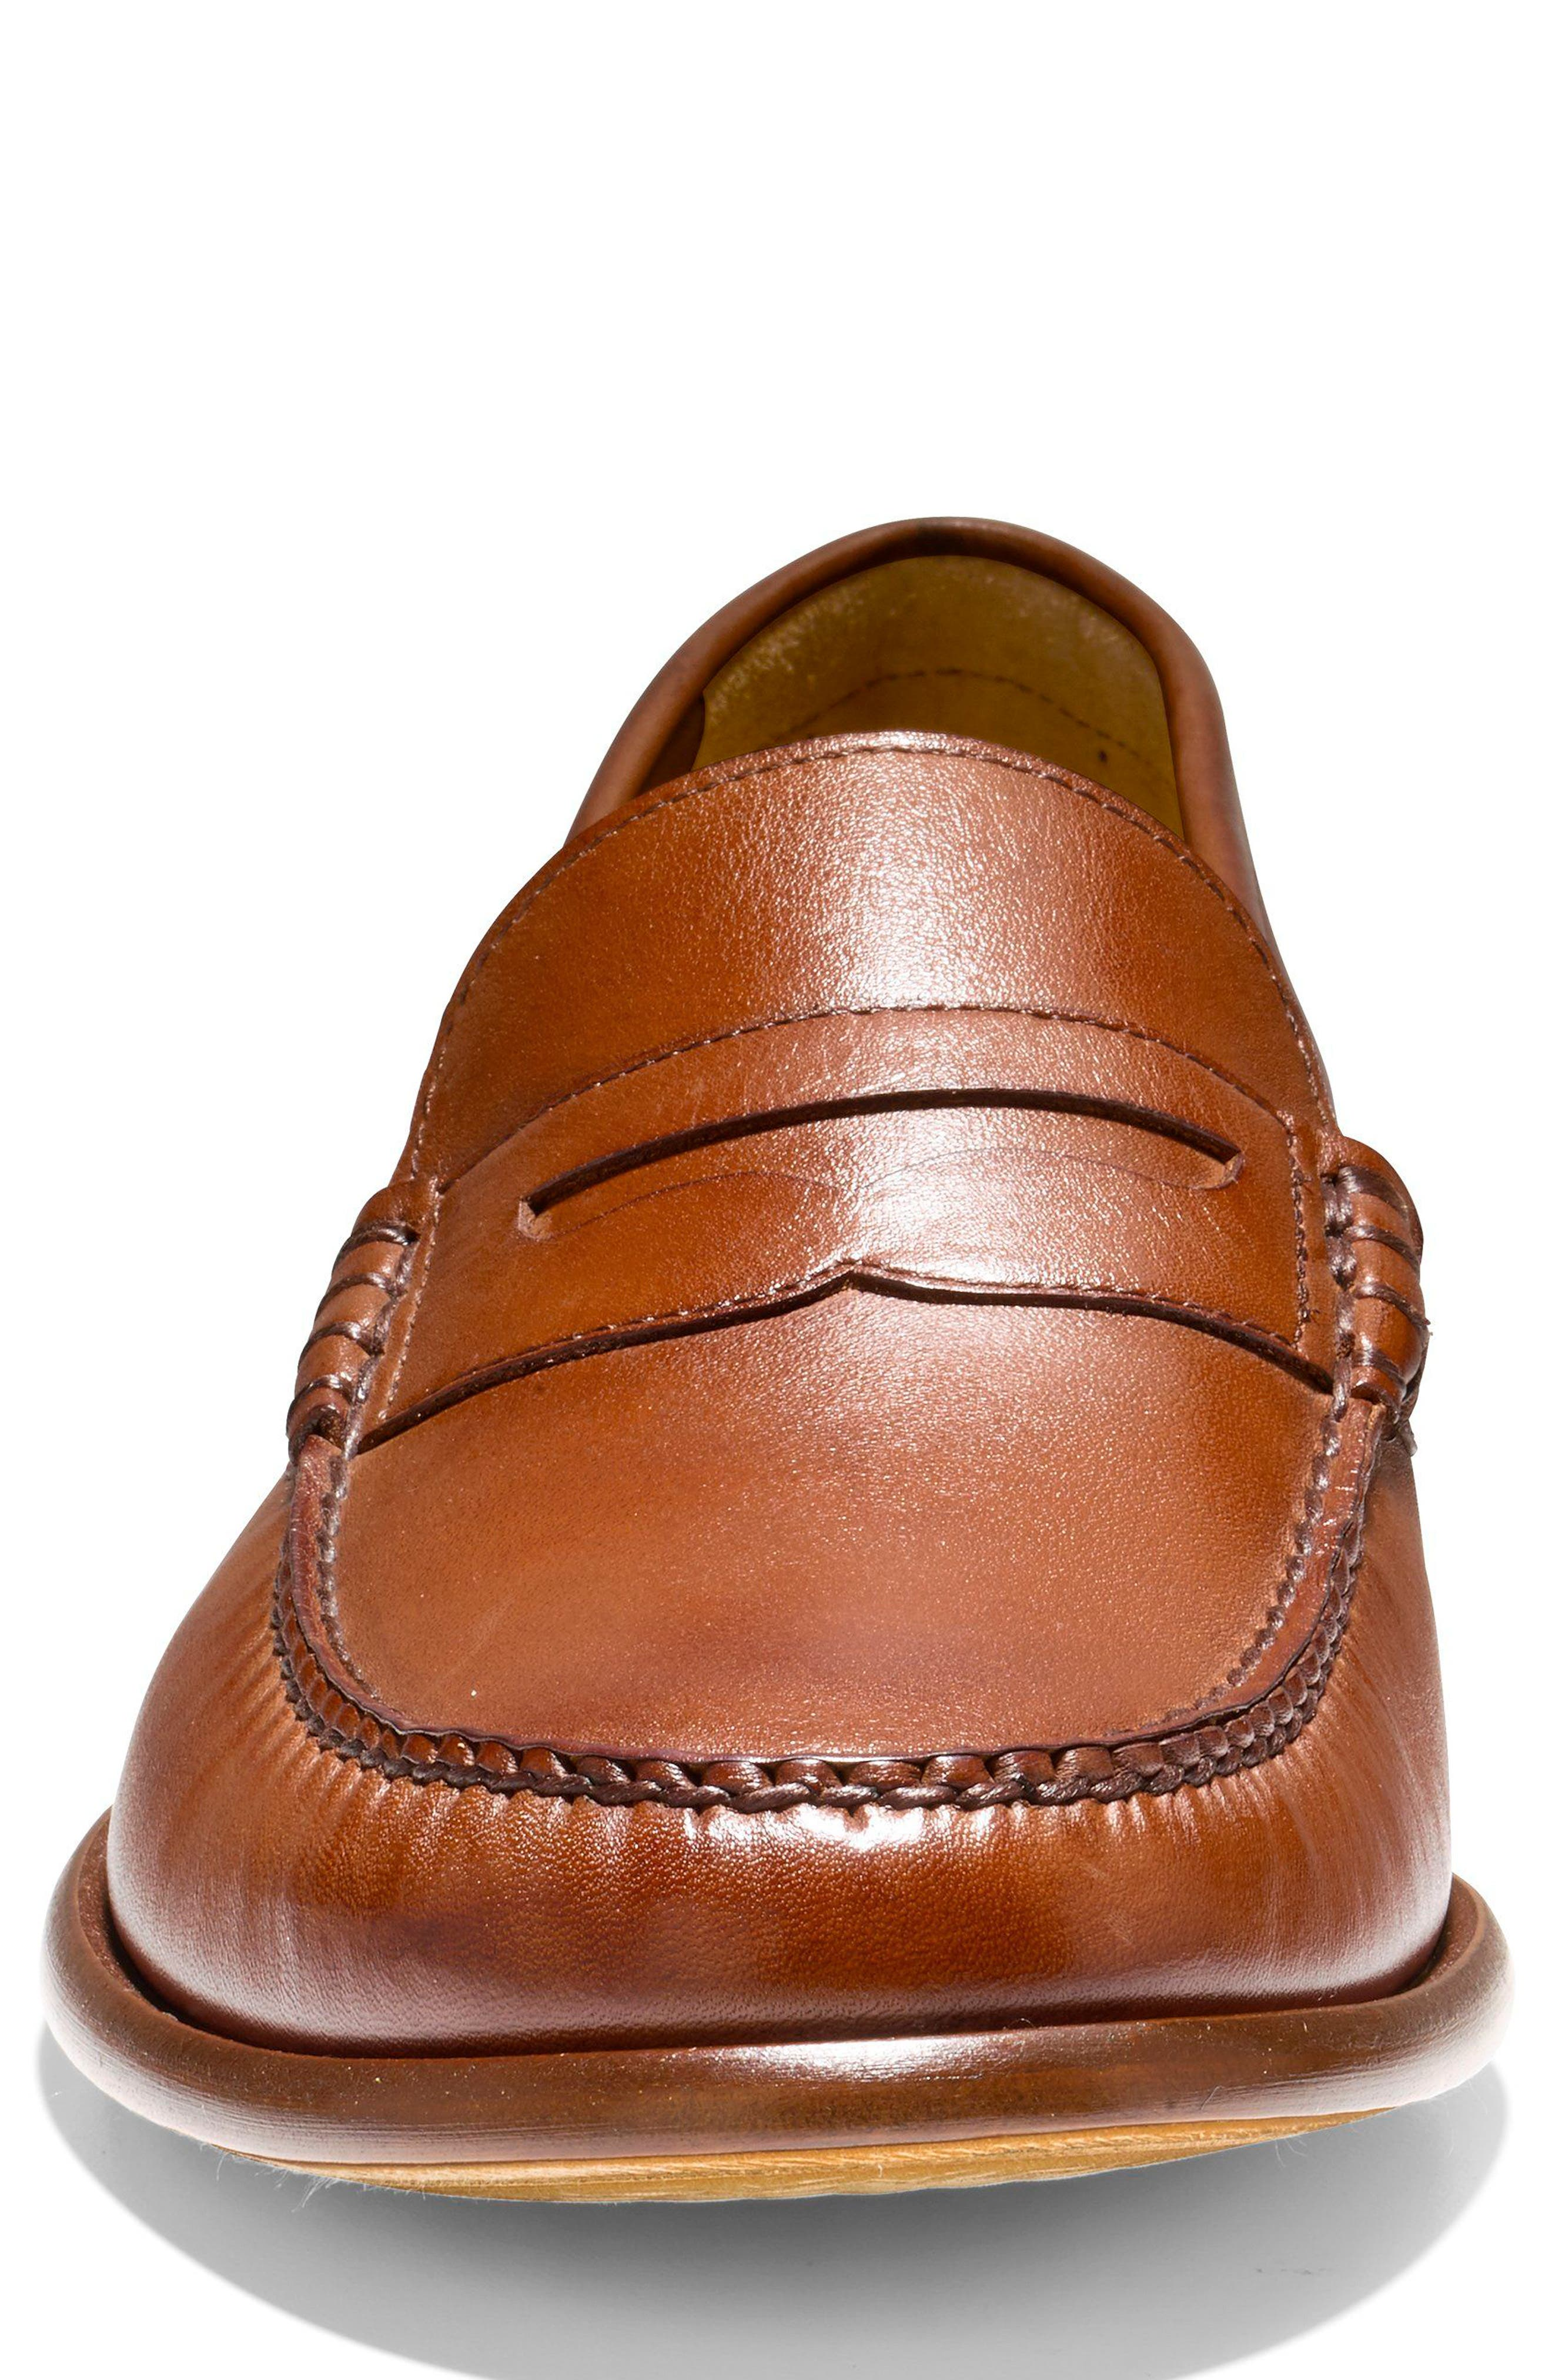 Pinch Penny Loafer,                             Alternate thumbnail 4, color,                             200